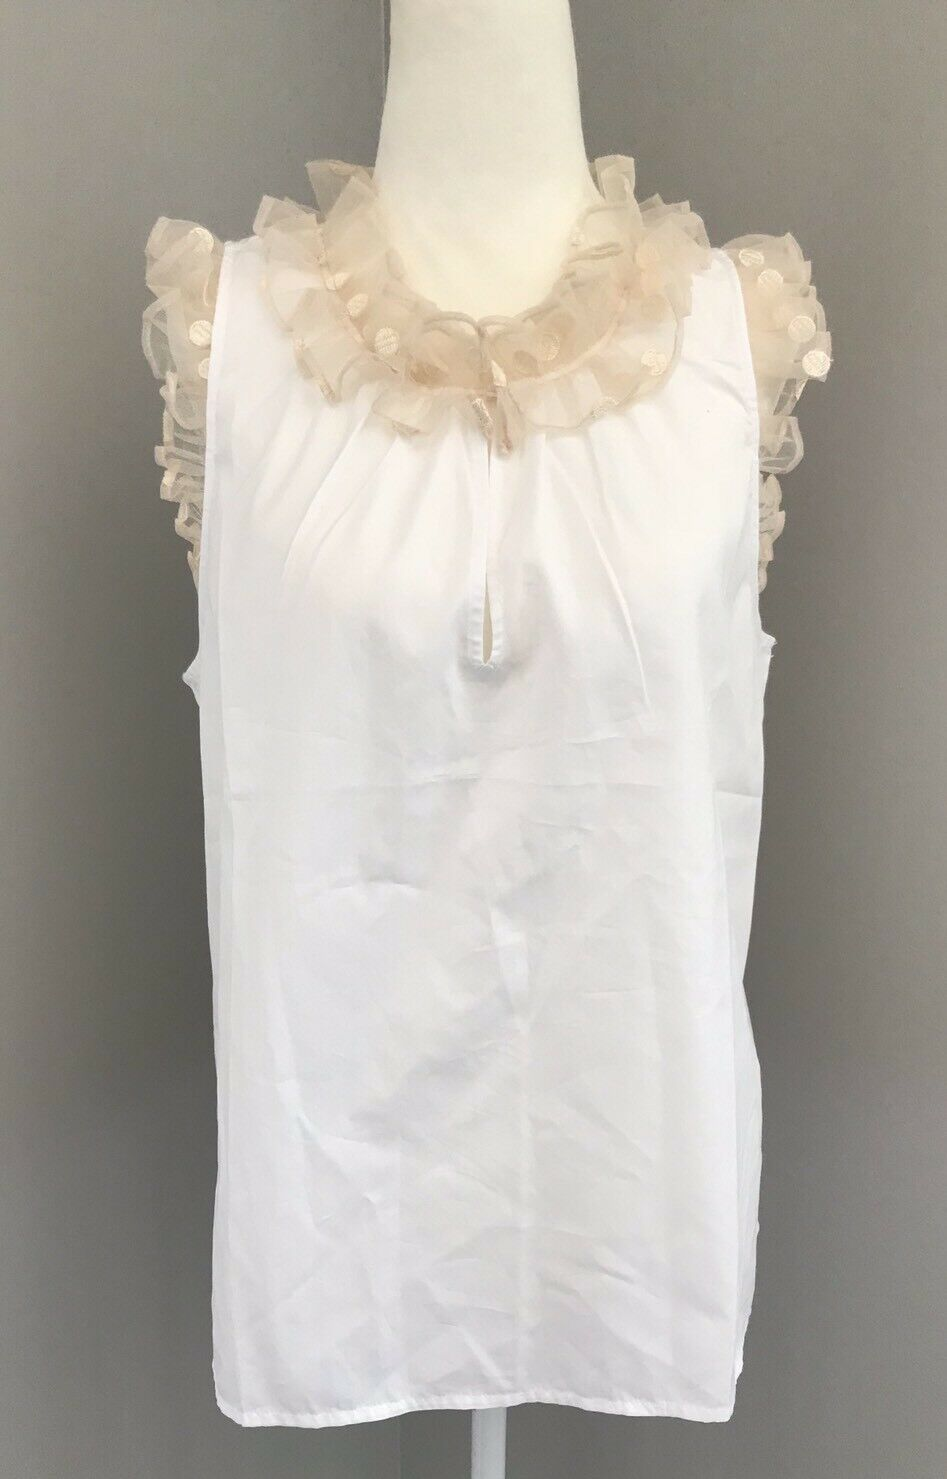 NEW COLLECTION THOMAS MASON FOR J. CREW TOP WITH TULLE TRIM SZ 2  G5915